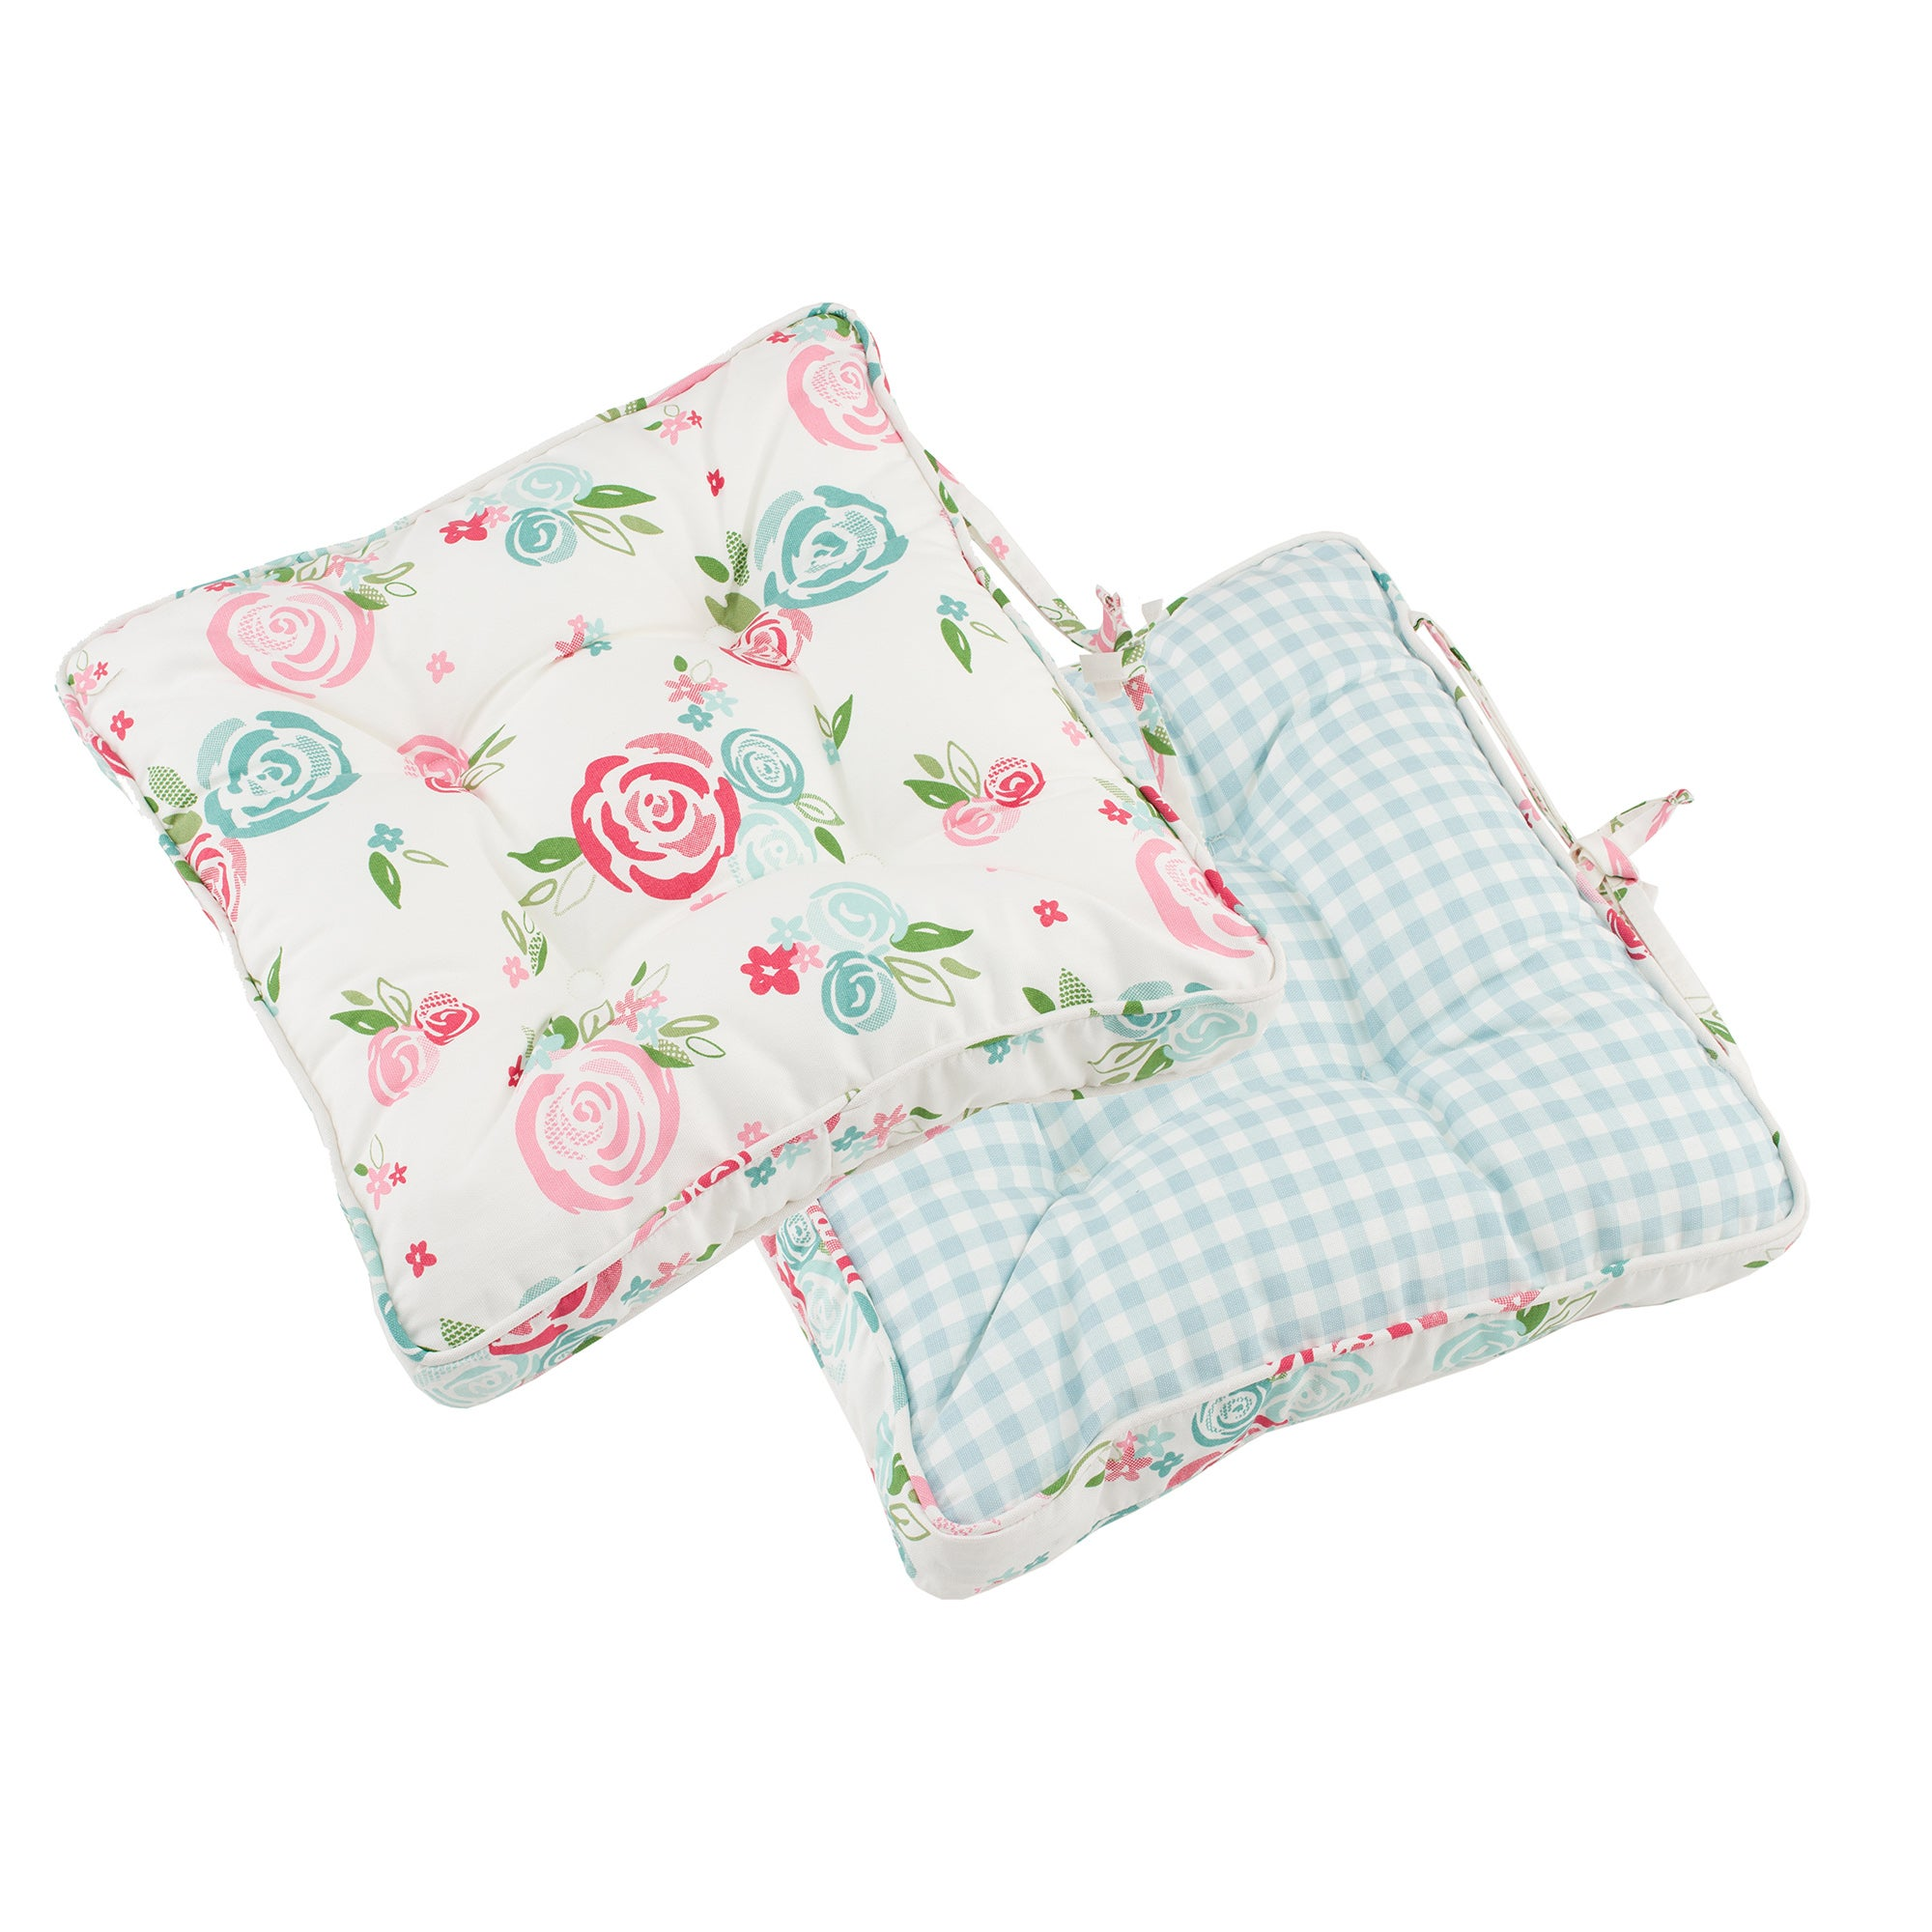 Image of Candy Rose Seat Pad Blue / Pink